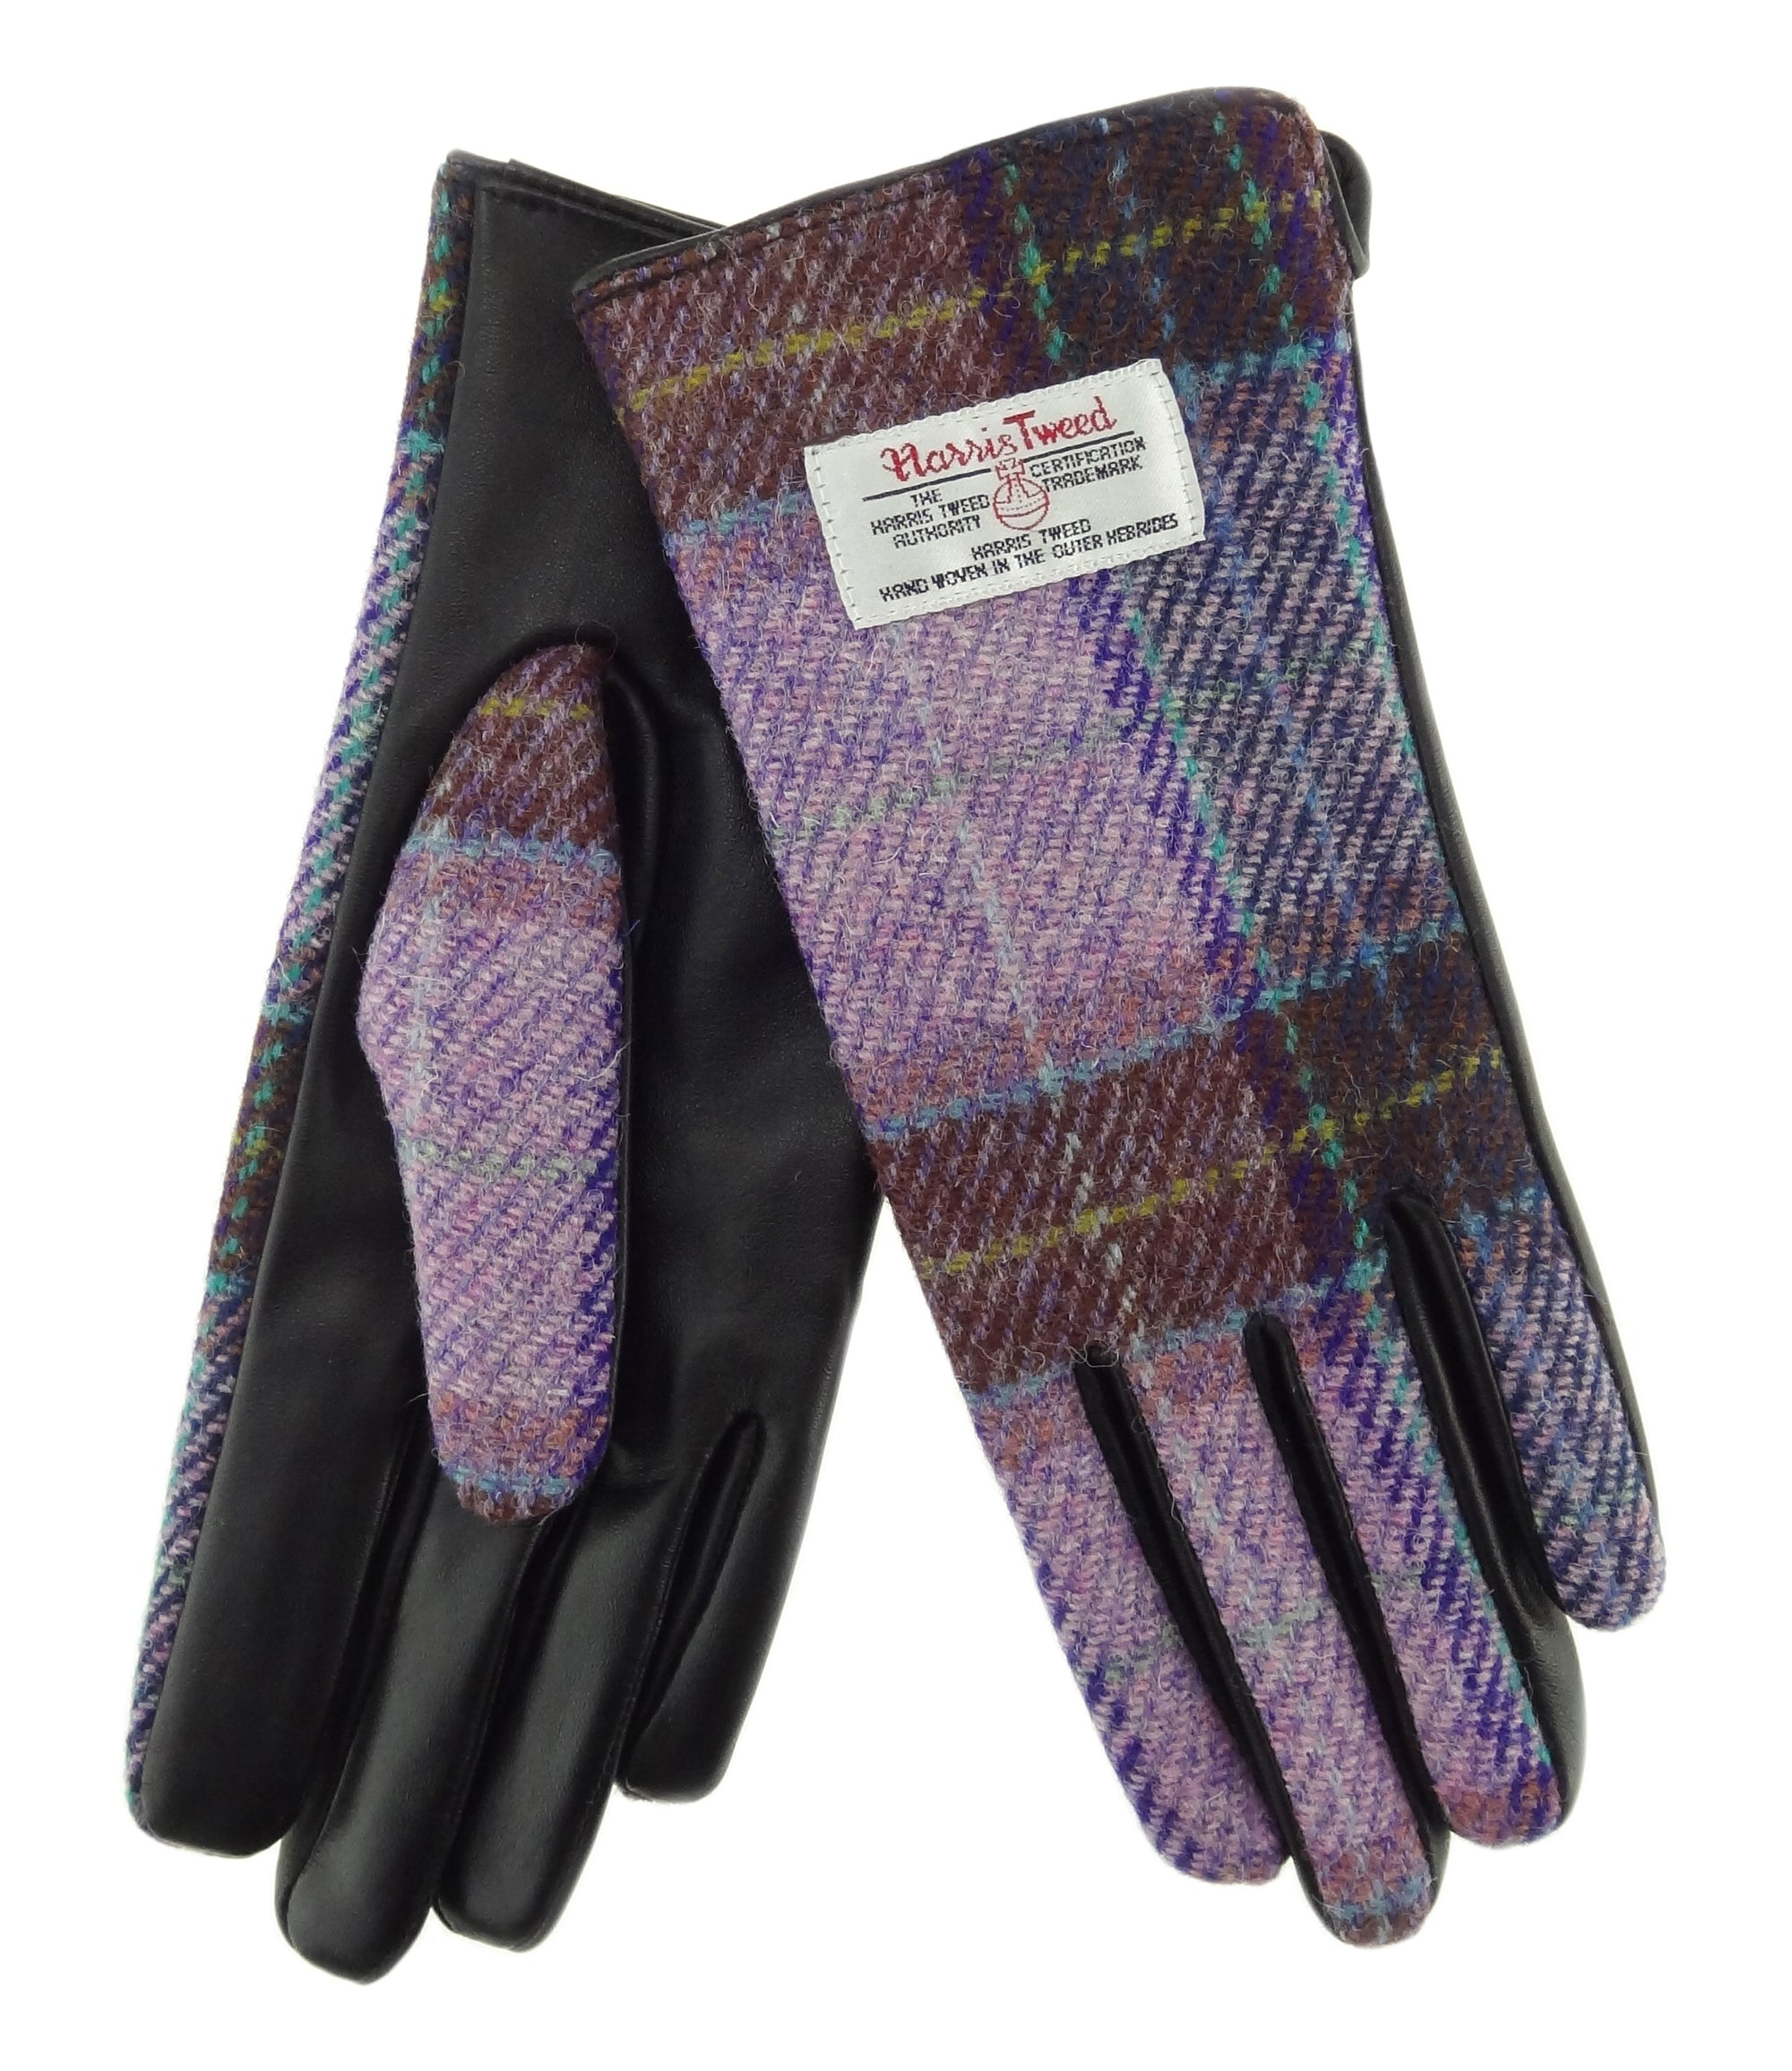 Womens Harris Tweed Gloves - Black Leather LB3000